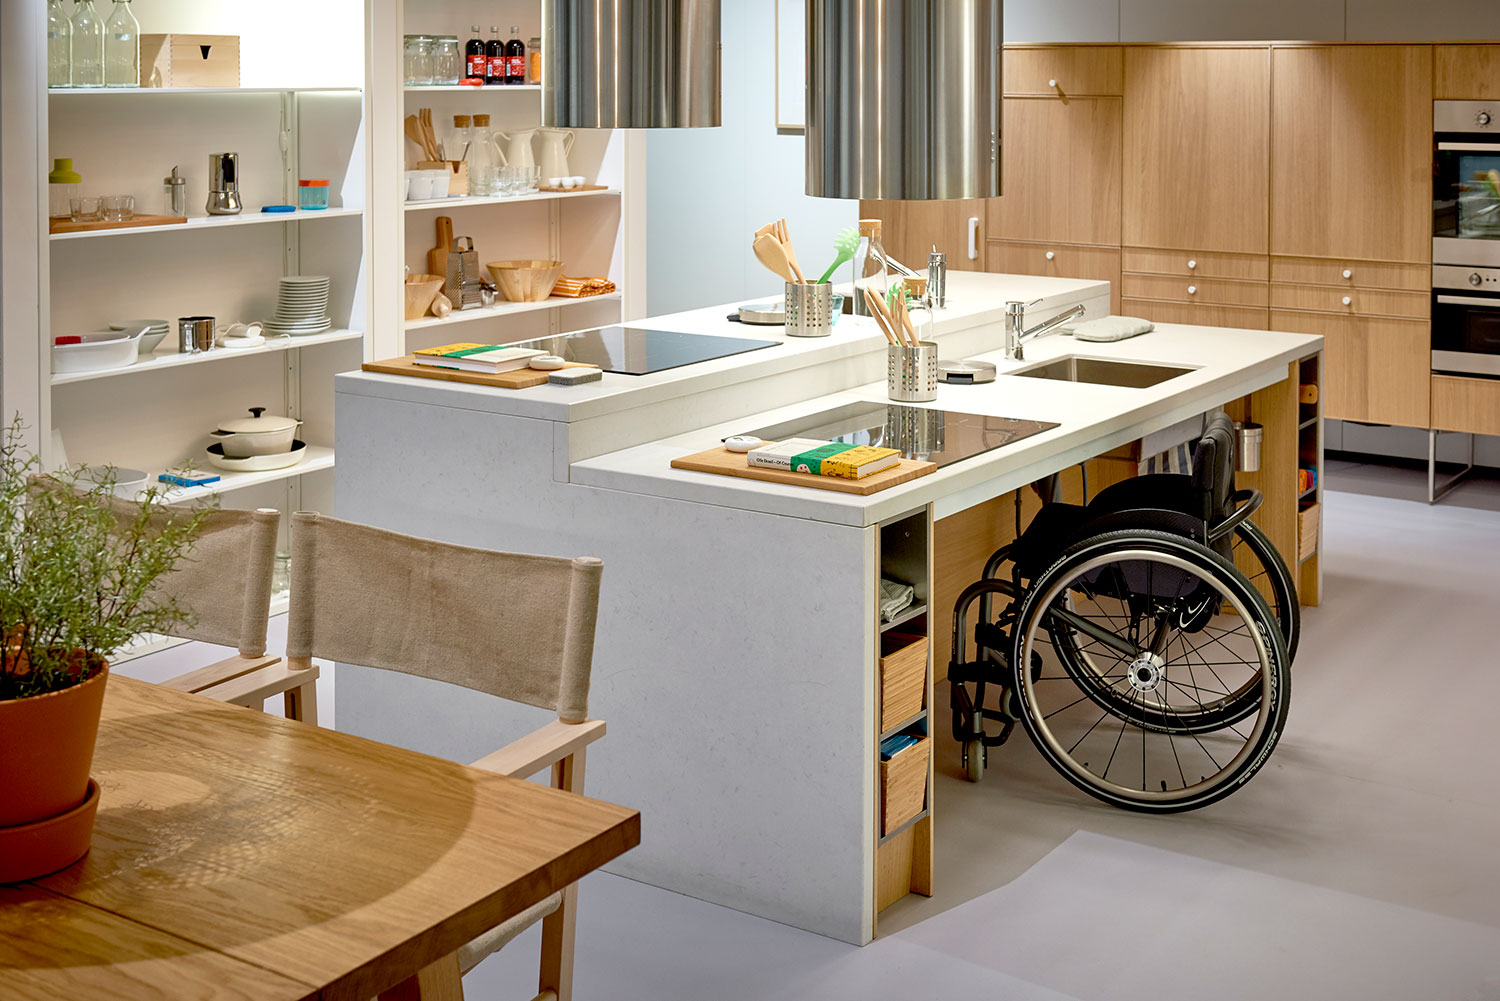 IKEA Kitchen Exhibit